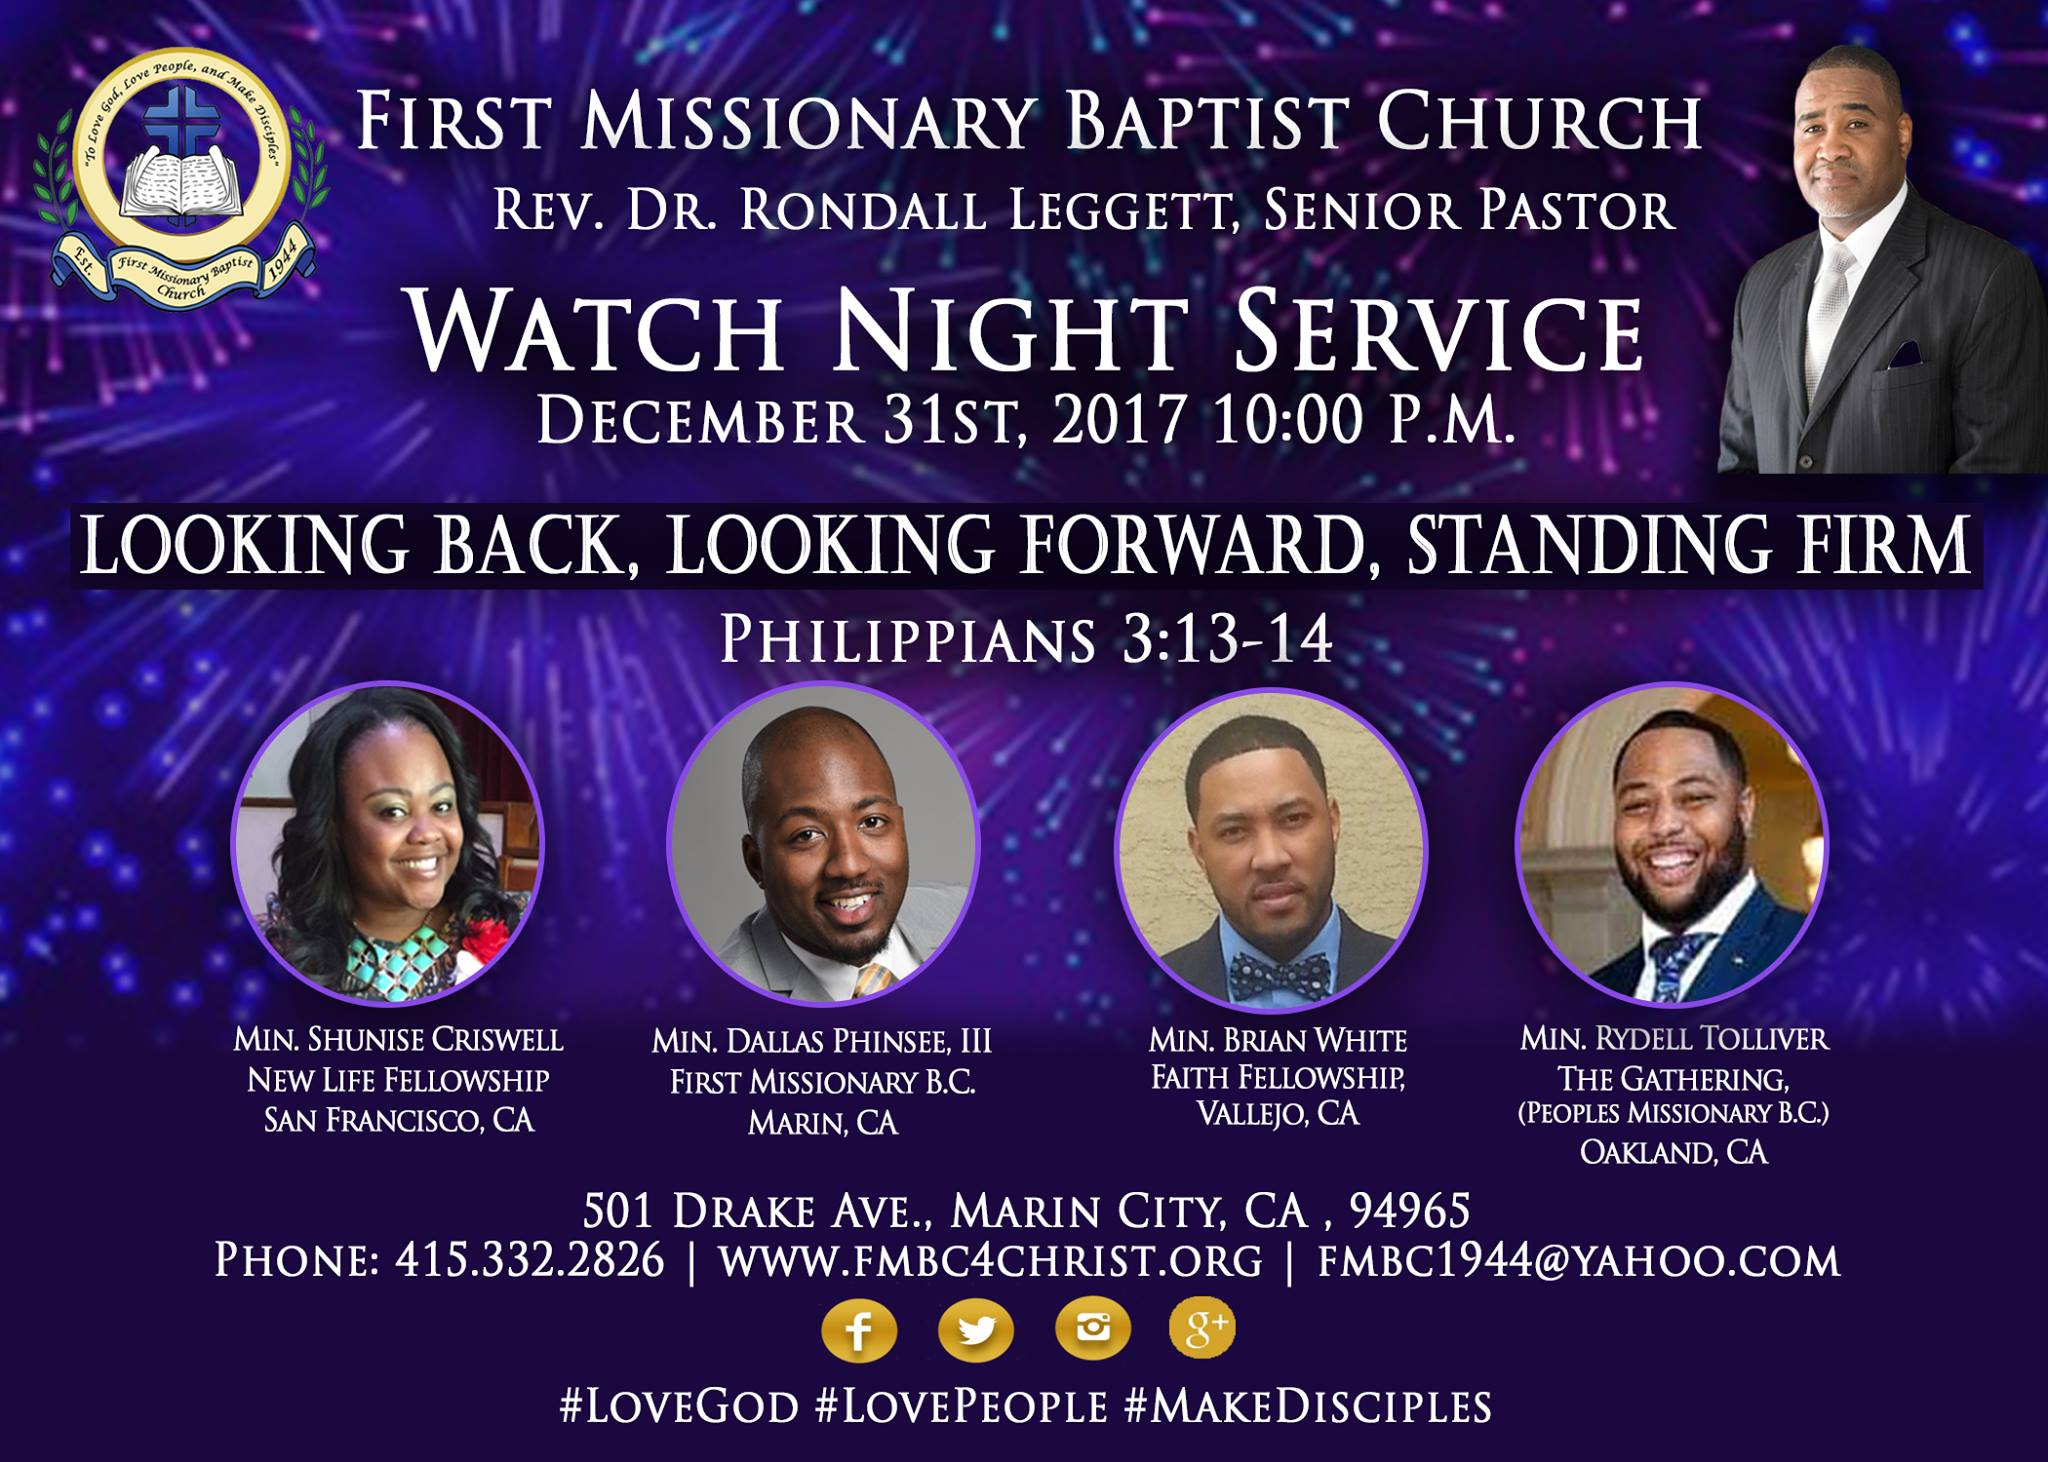 First Missionary Baptist Church - Watch Night 2017